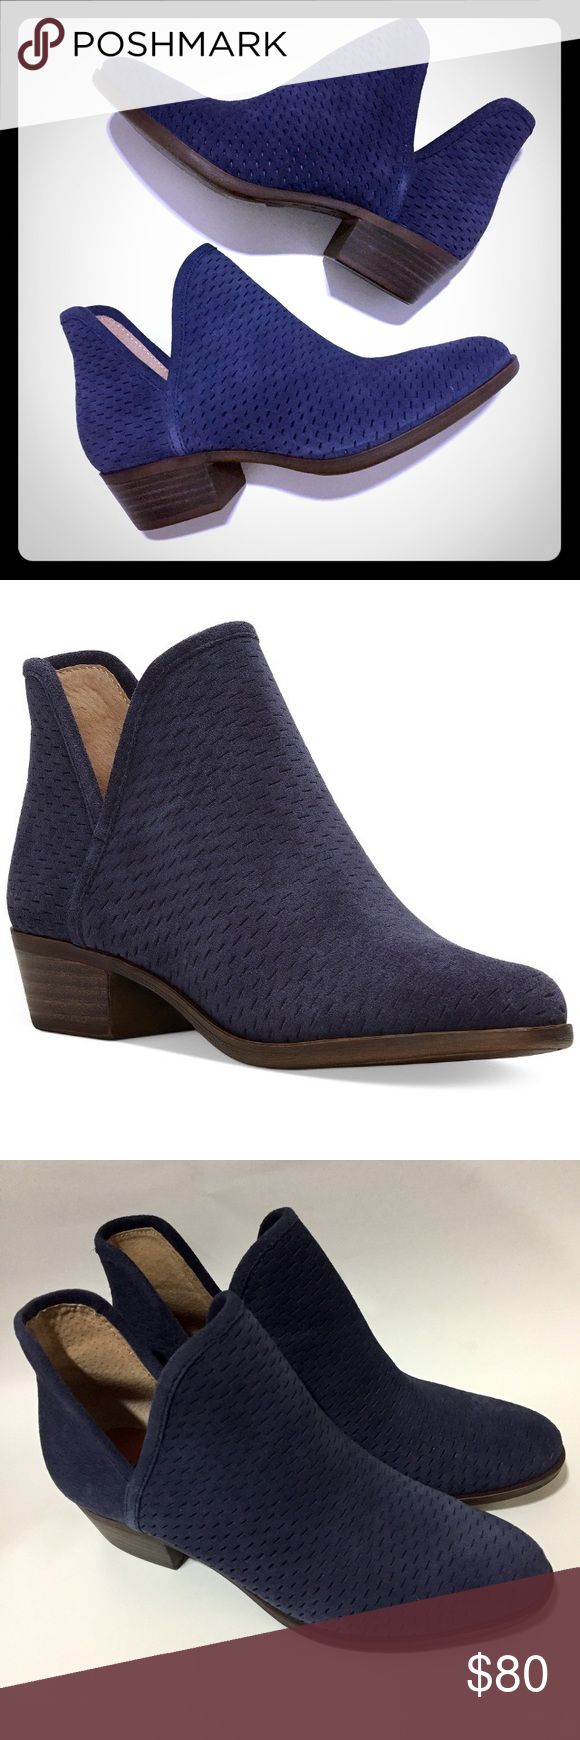 Lucky Brand Baley Perforated Booties for Fall! Lucky Brand Baley Perforated Booties Moroccan Suede Blue. This menswear inspired booties is great to slip on with skinny jeans or a daytime dress. Such a fun bootie to wear for Fall and into Spring. 1 1/4' blockheel Color is called Moroccan Suede. This bootie is currently still in dept. store for full price. Lucky Brand Shoes Ankle Boots & Booties